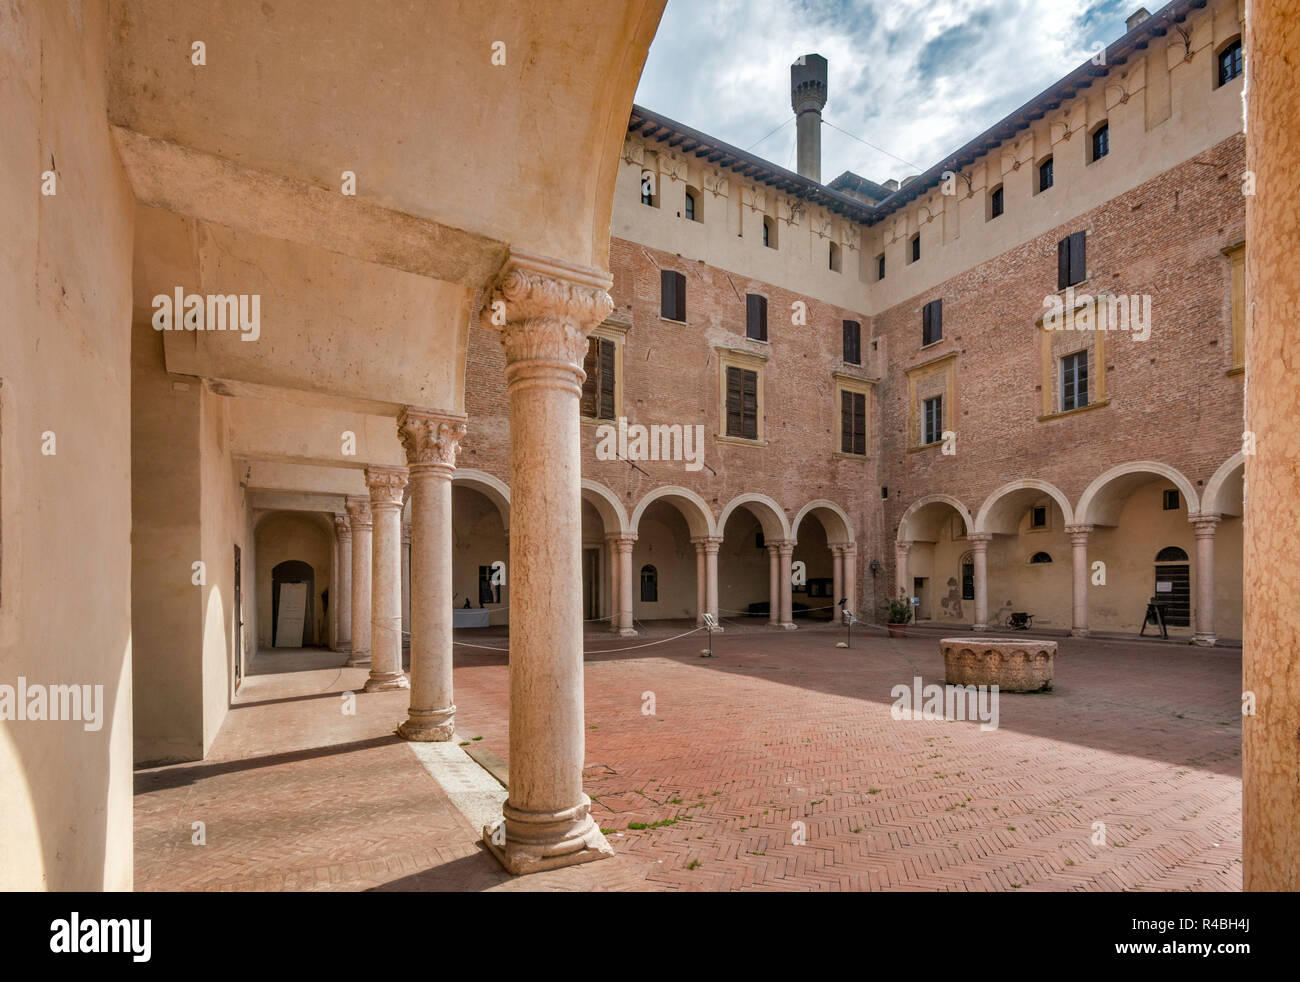 Courtyard at Palazzo Ducale, in village of Revere, Lombardy, Italy - Stock Image